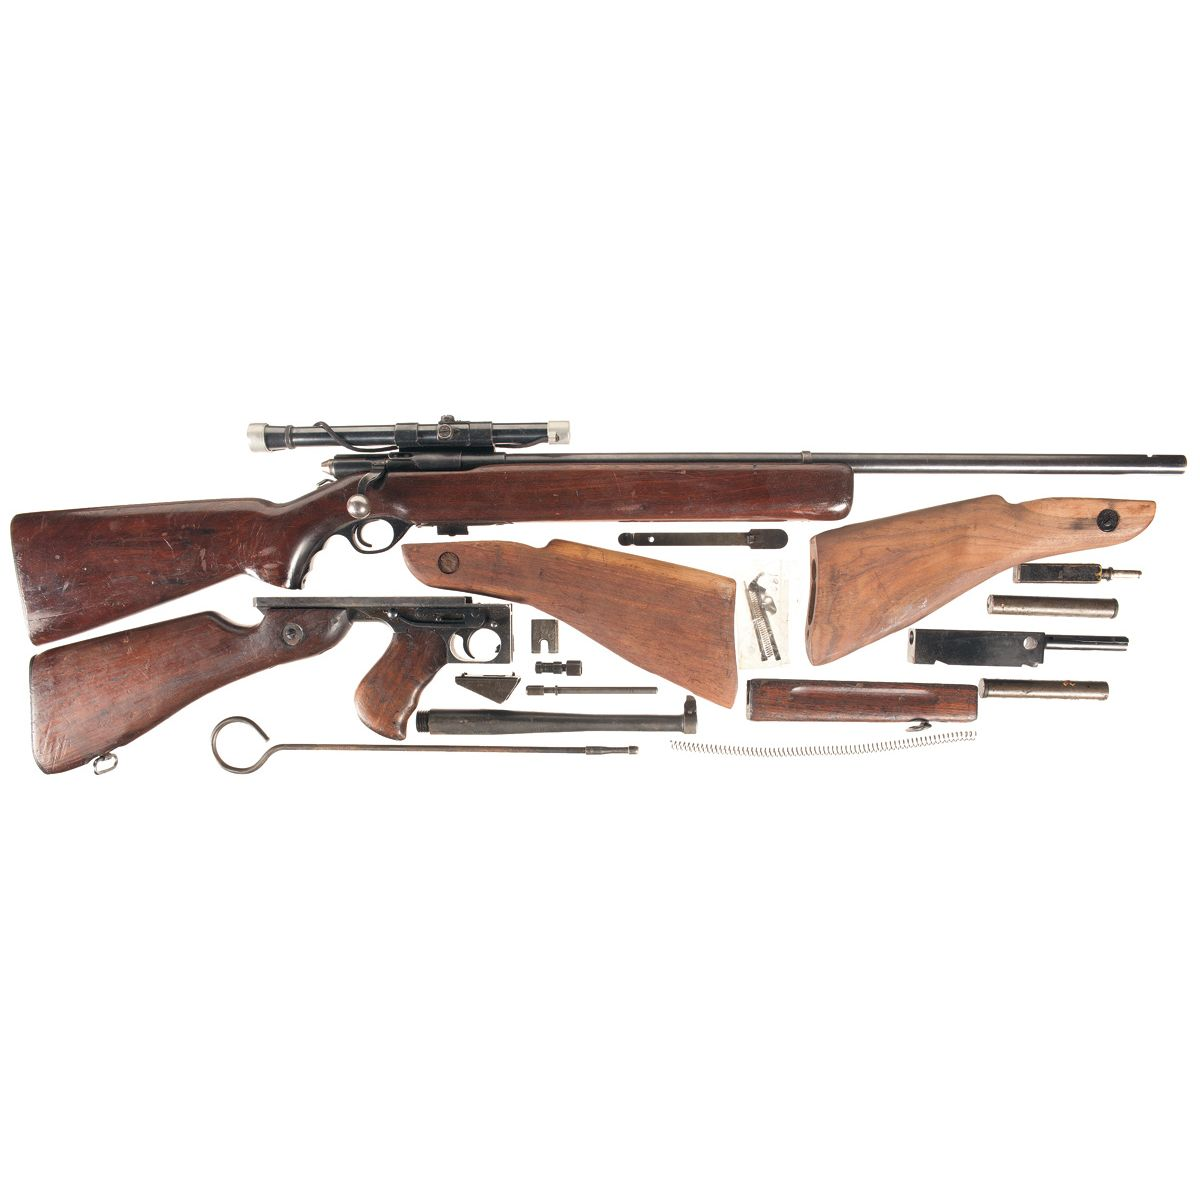 One Bolt Action Rifle and One Parts Kit -A) Mossberg Model 44US (b) Bolt  Action Rifle with Scope